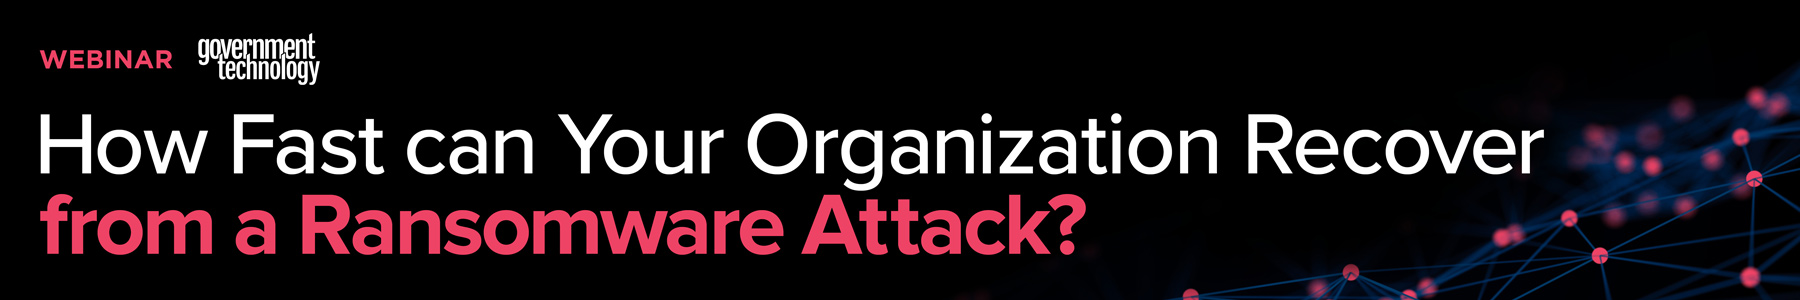 How Fast can Your Organization Recover from a Ransomware Attack?